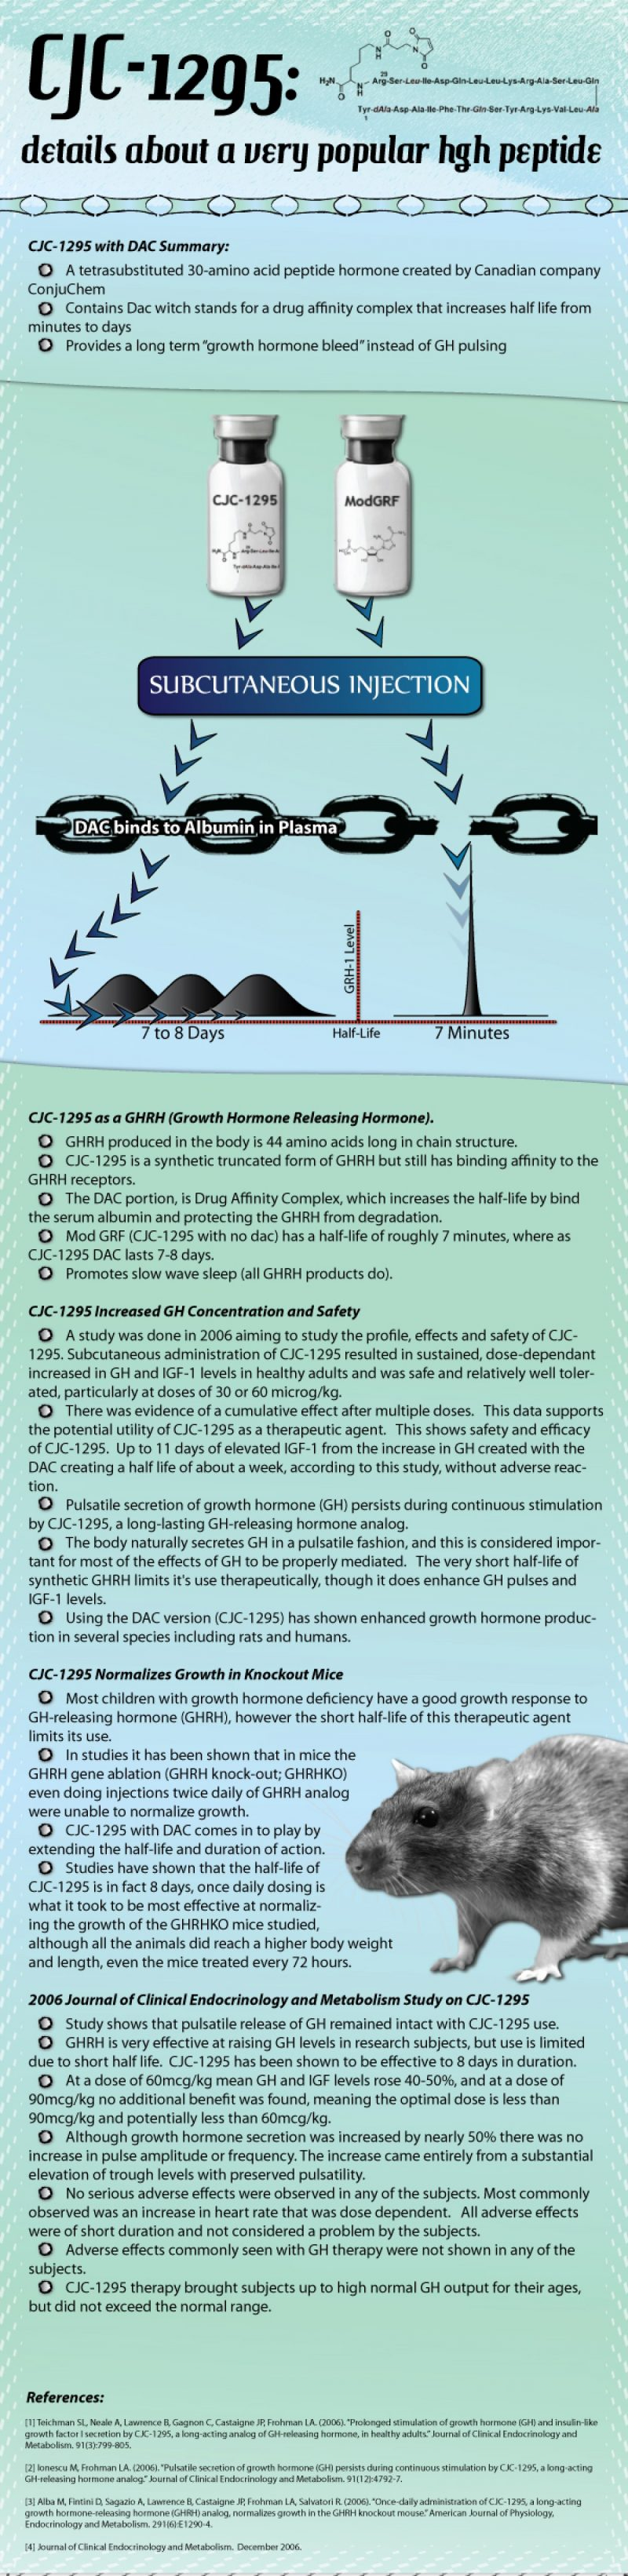 CJC-1295: details about a very popular hgh peptide [Infographic]